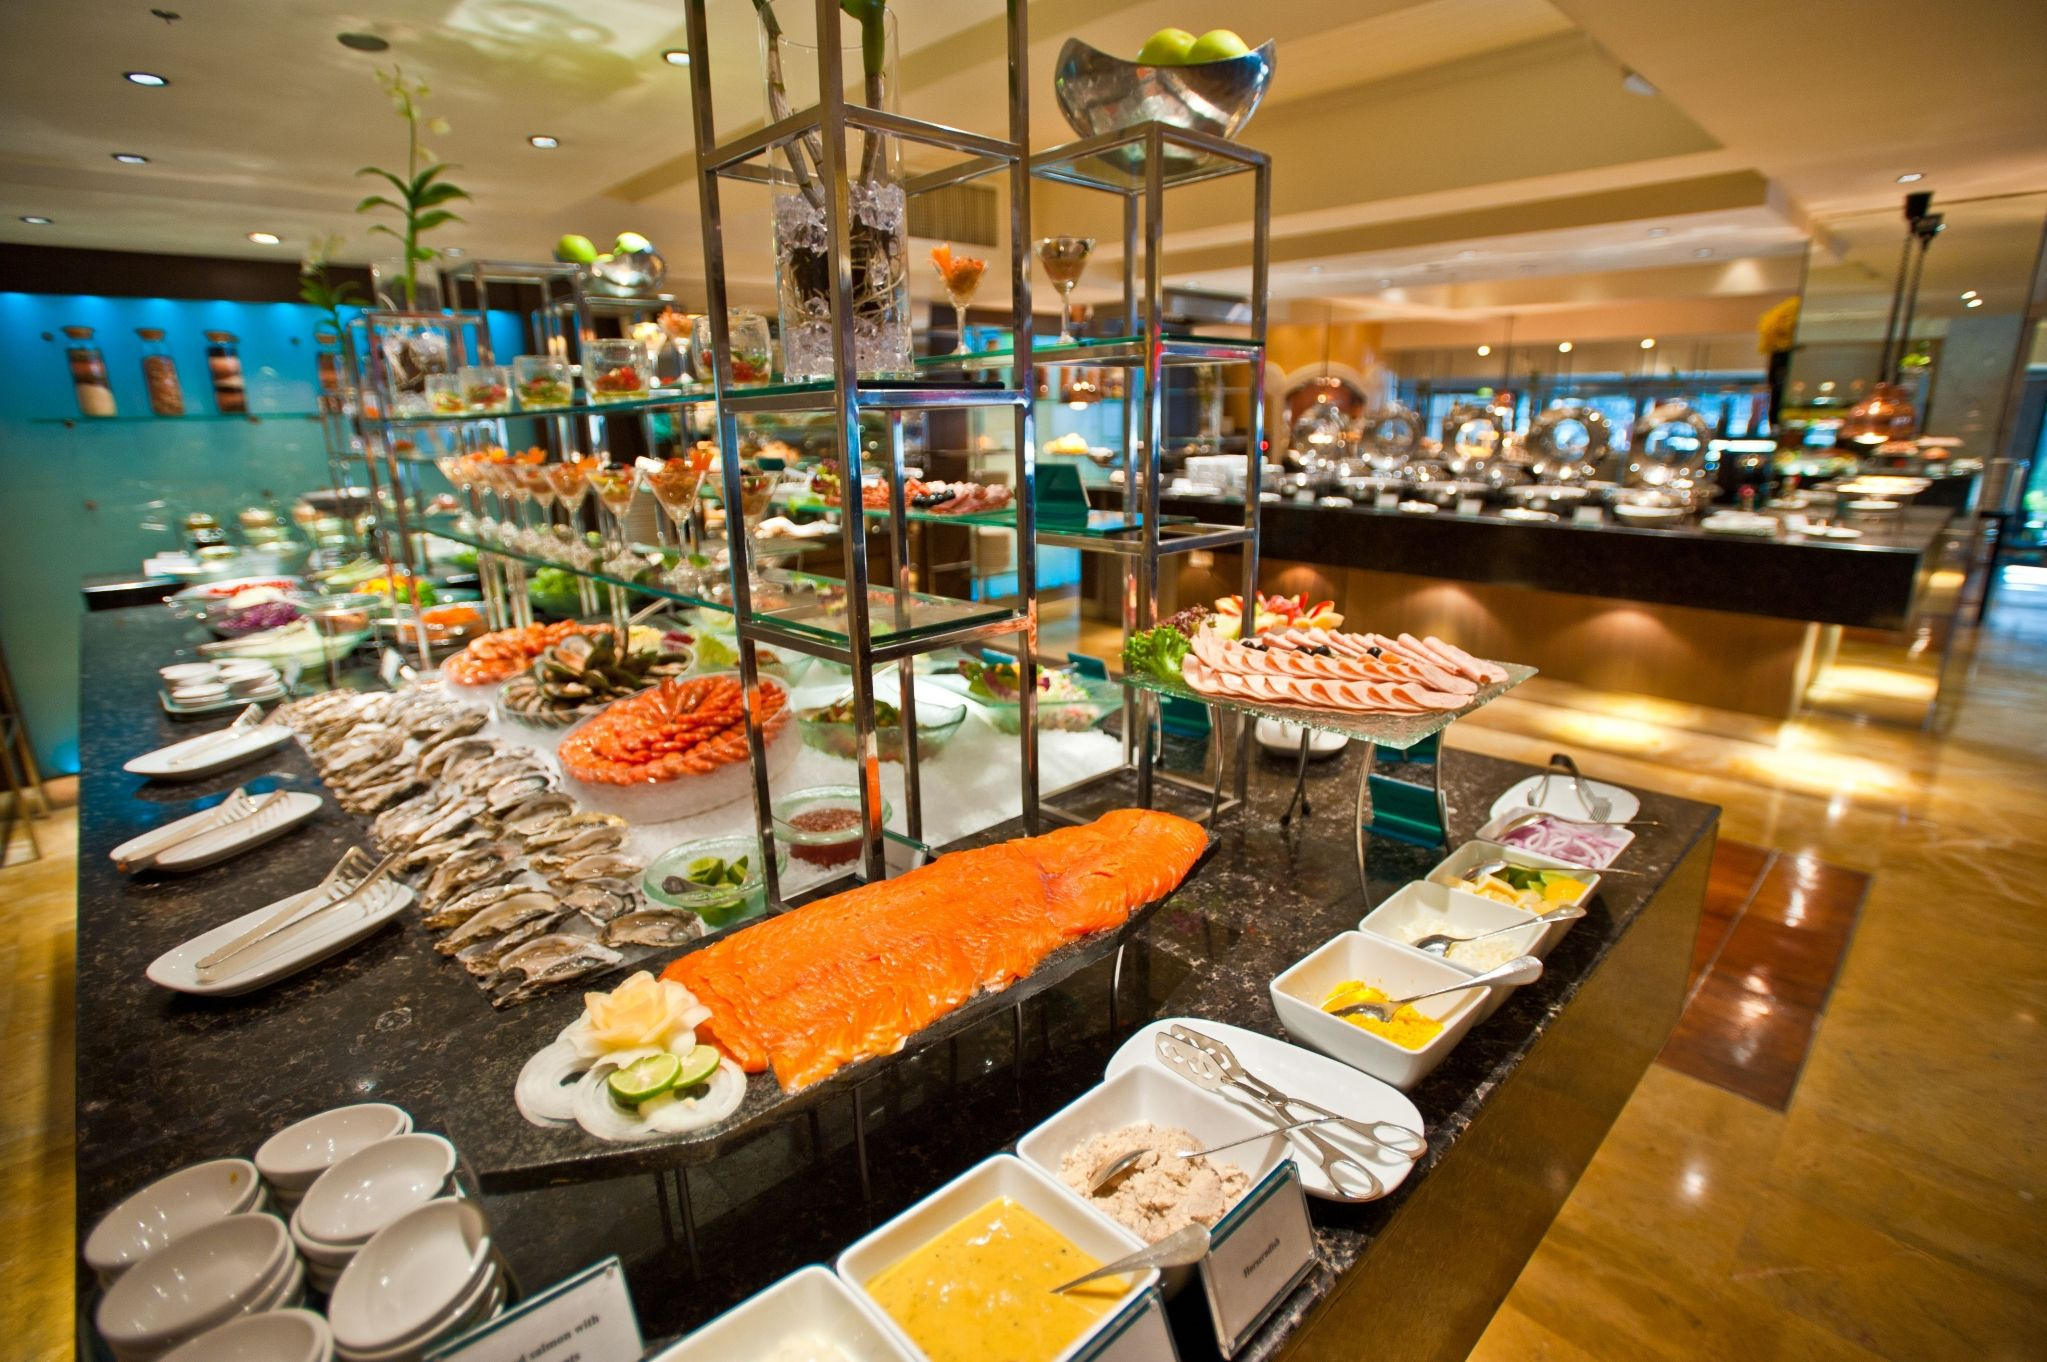 Lunch & Dinner Buffet at Feast - Royal Orchid Sheraton Hotel & Tower Bangkok